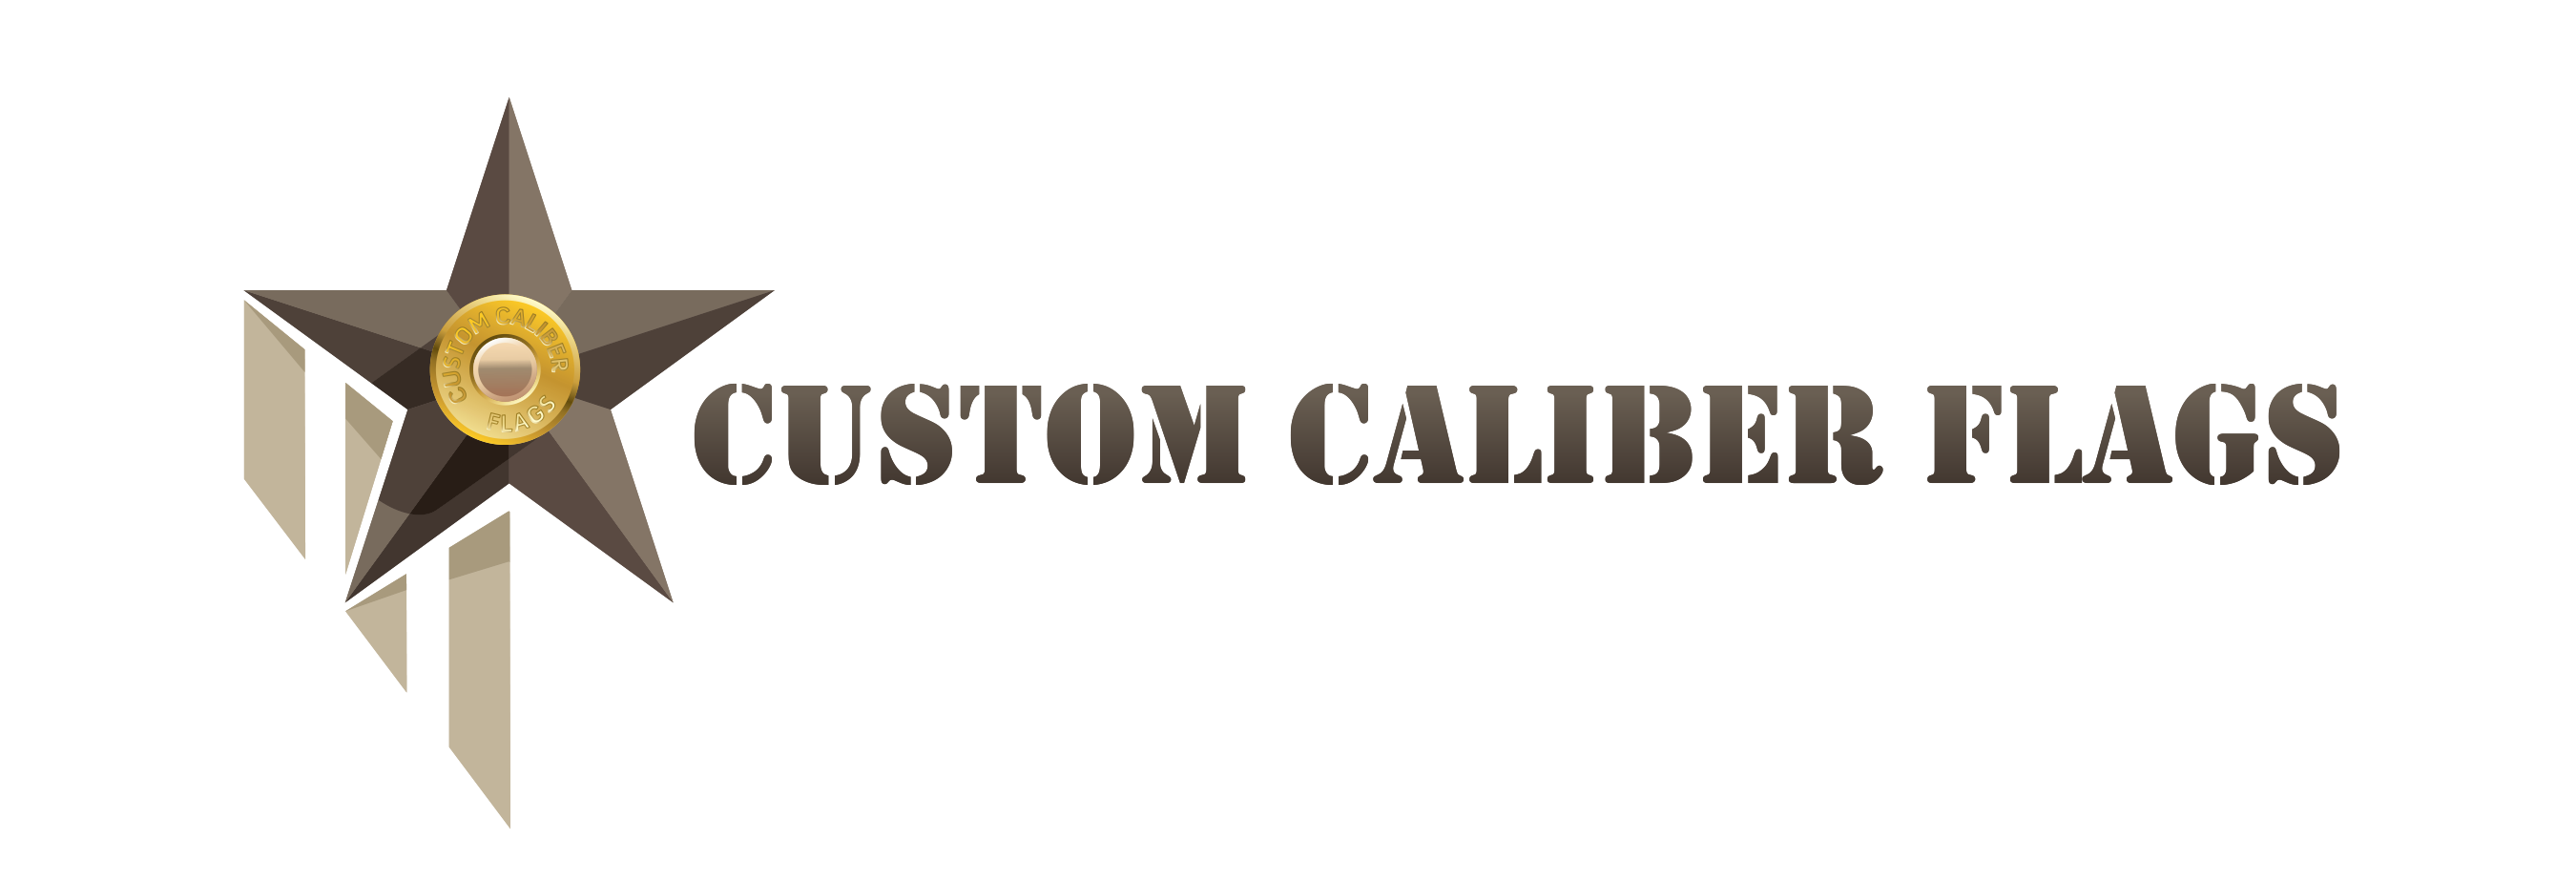 Custom Caliber American Flags